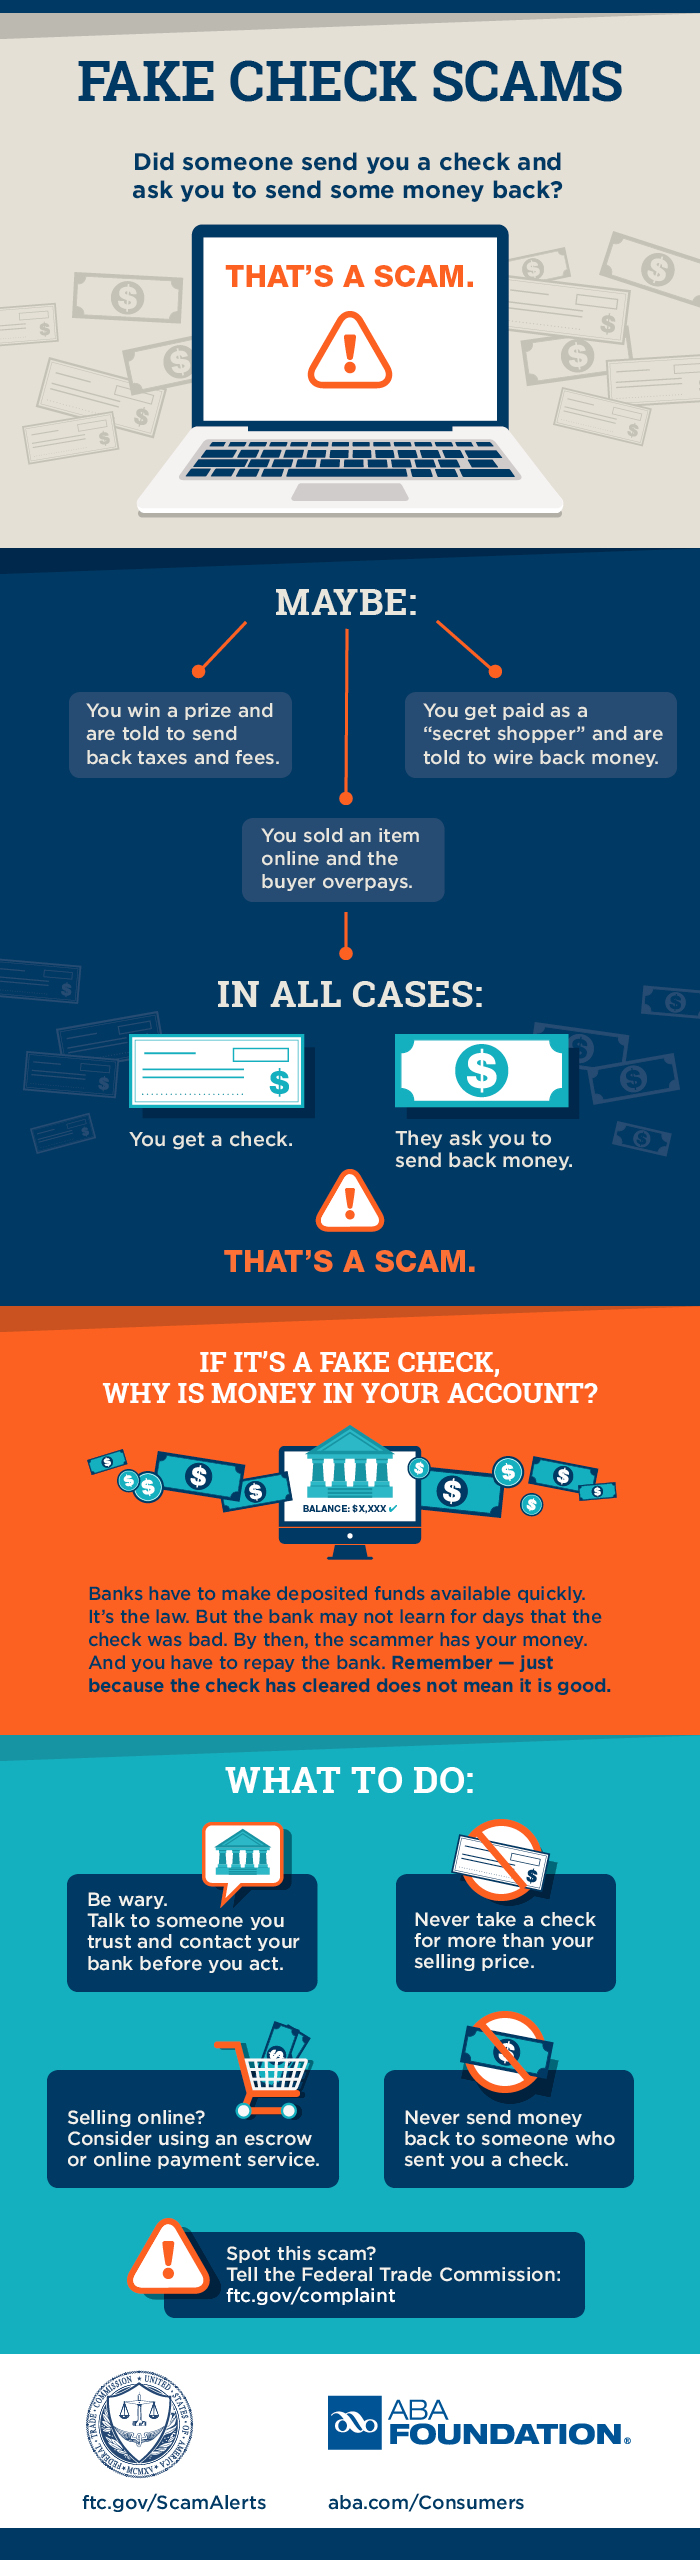 FTC Fake Check Infographic